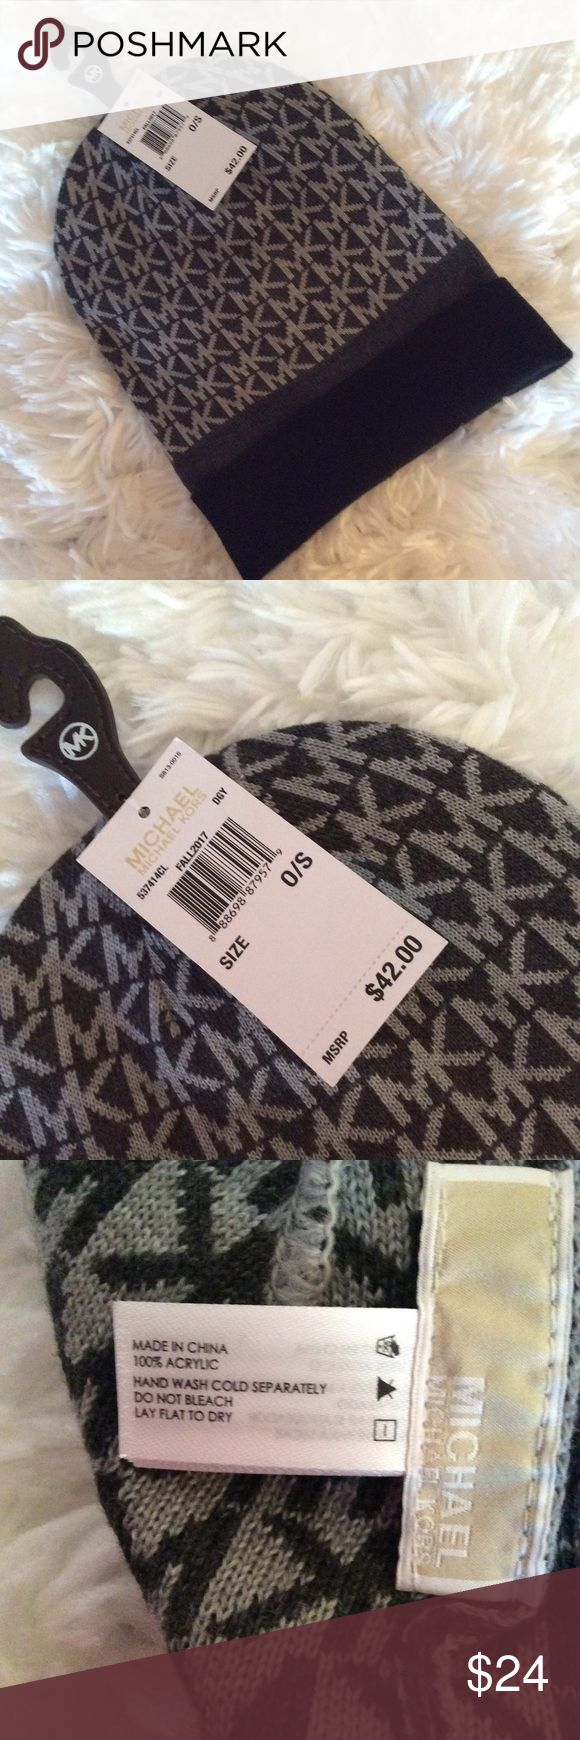 Michael Kors  women's logo hat/beanie.  NWT. Winter hat/beanie.  MK logo around entire hat.  Gray and black.  New.  Hat can be folded to preferred length. MICHAEL Michael Kors Accessories Hats